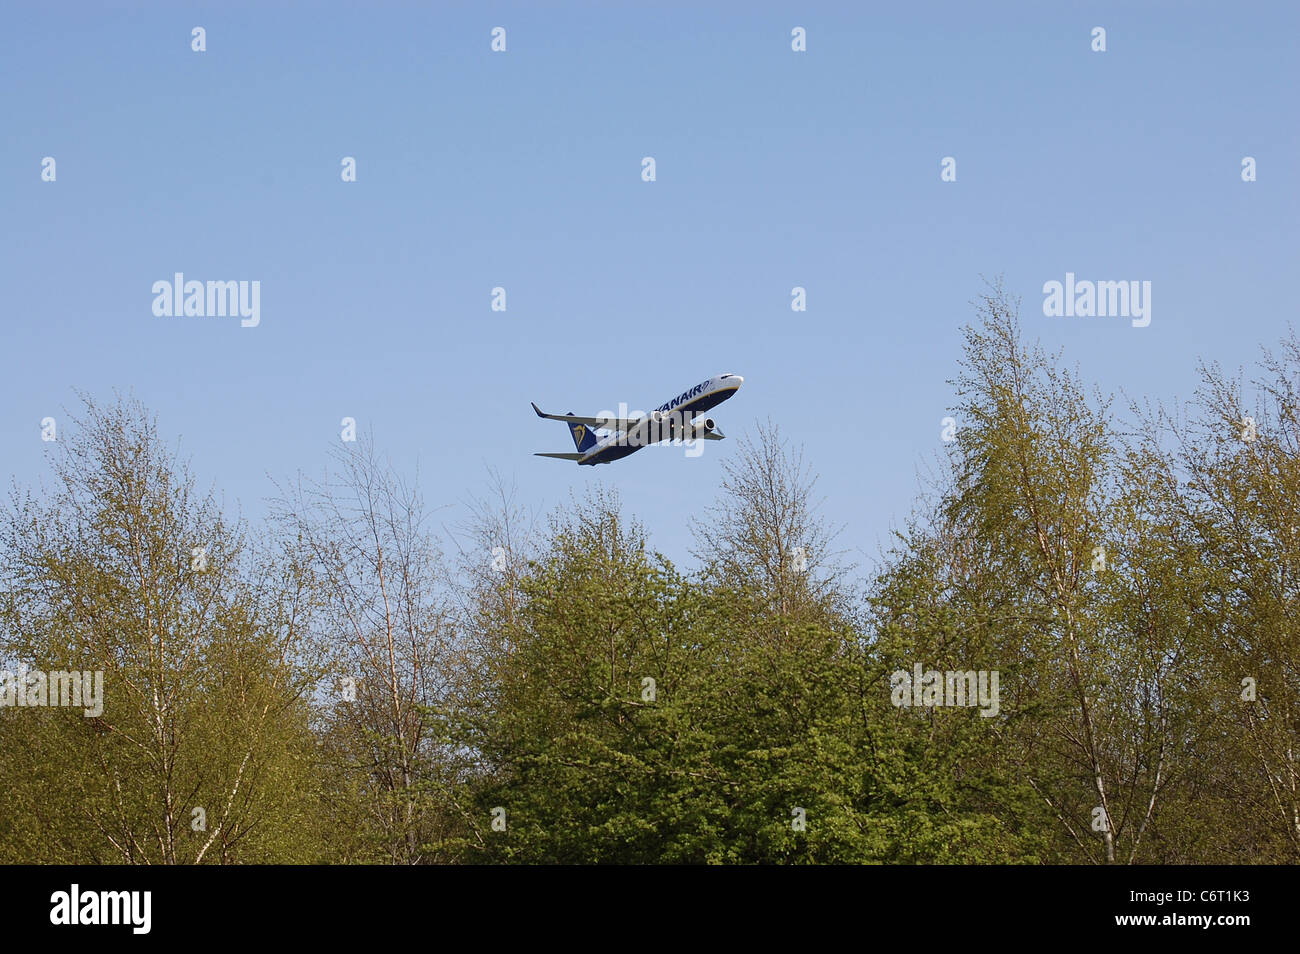 Ryanair twin jet passenger aircraft climbing out from airport - Stock Image